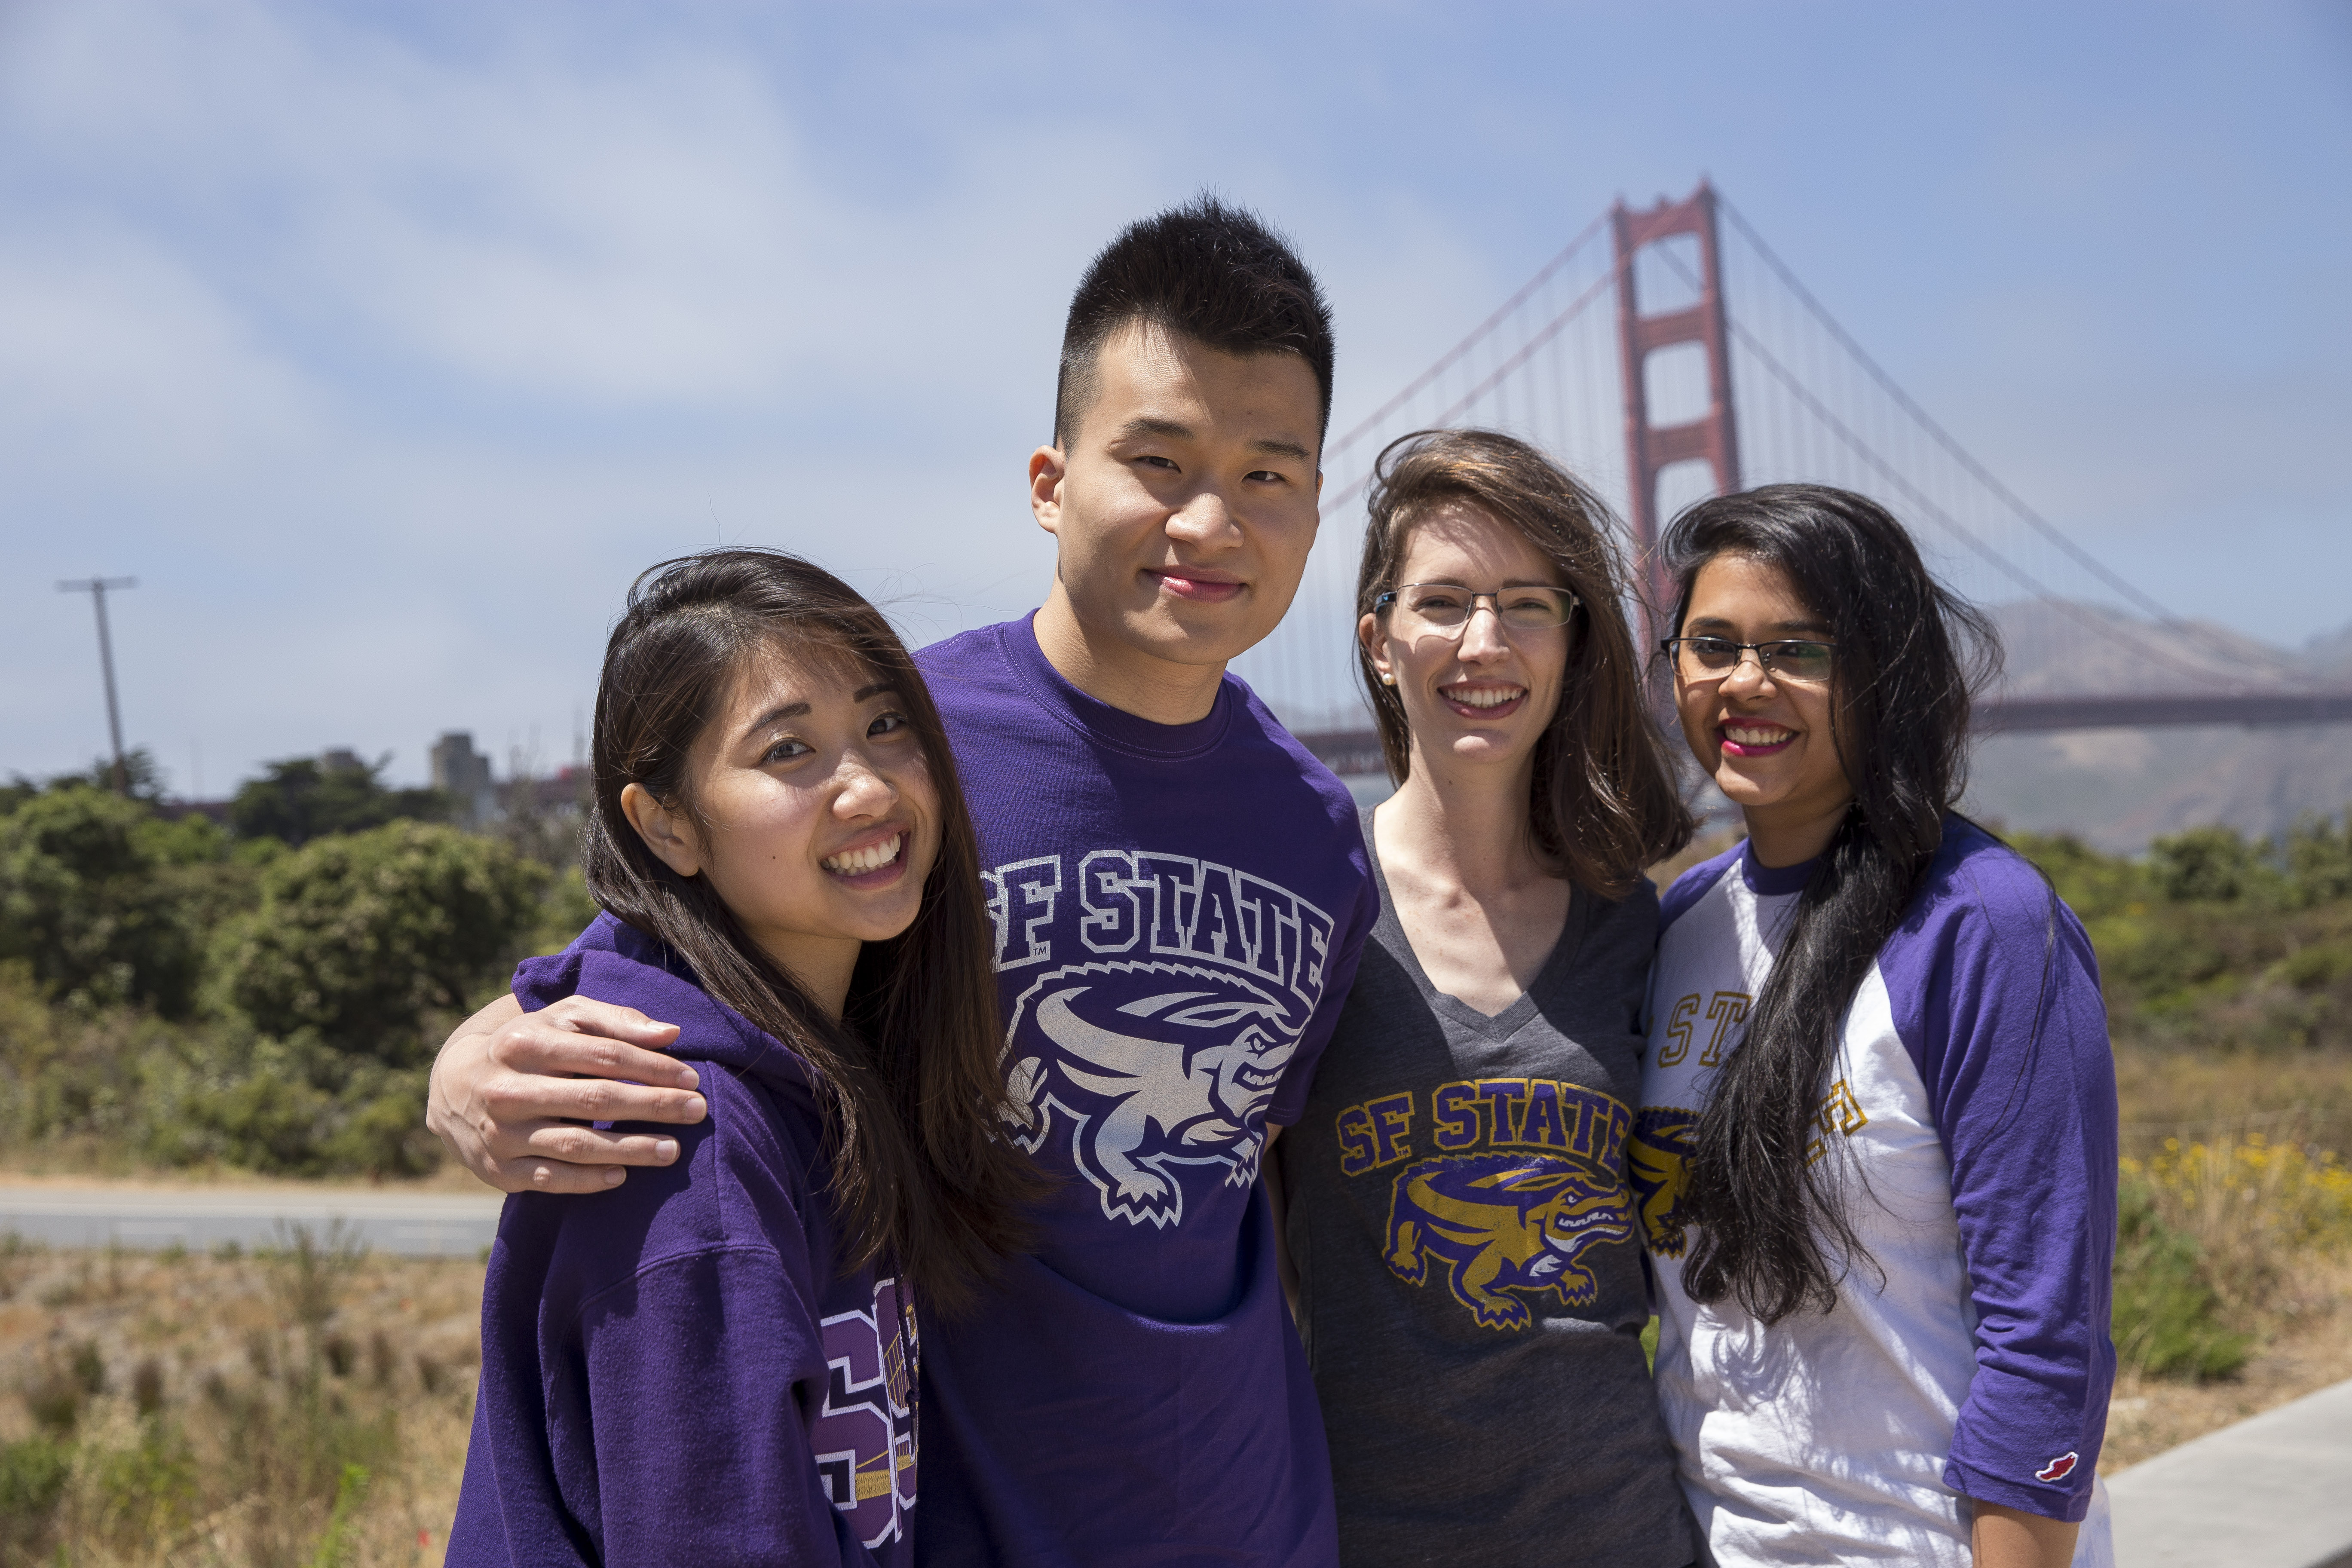 Students wearing SF State tshirts